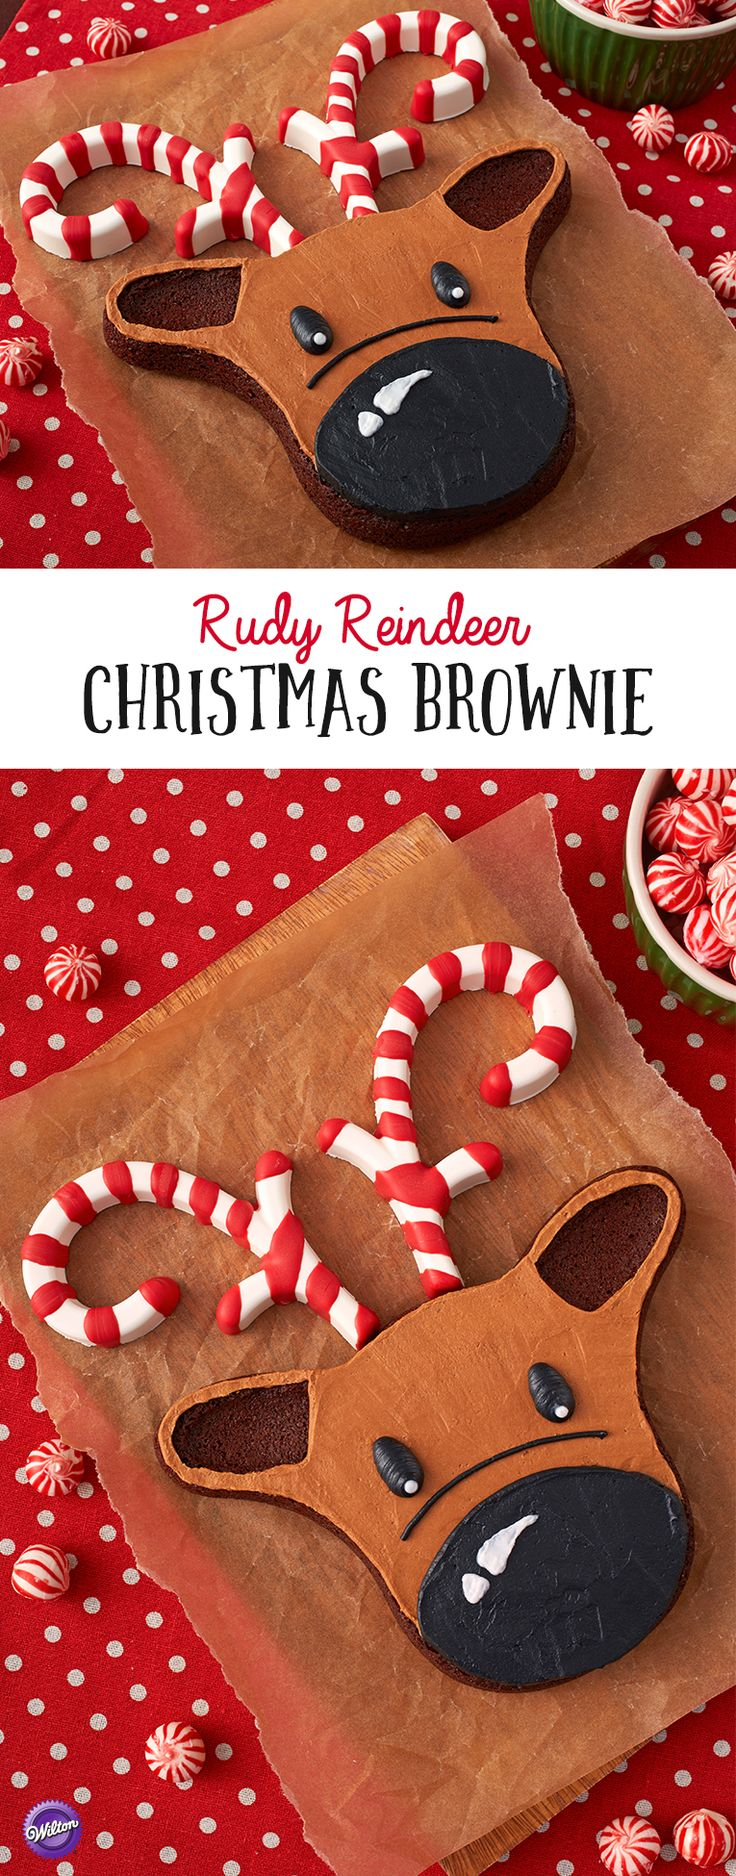 How to Make a Reindeer Christmas Brownie - This cute and ... - photo#39